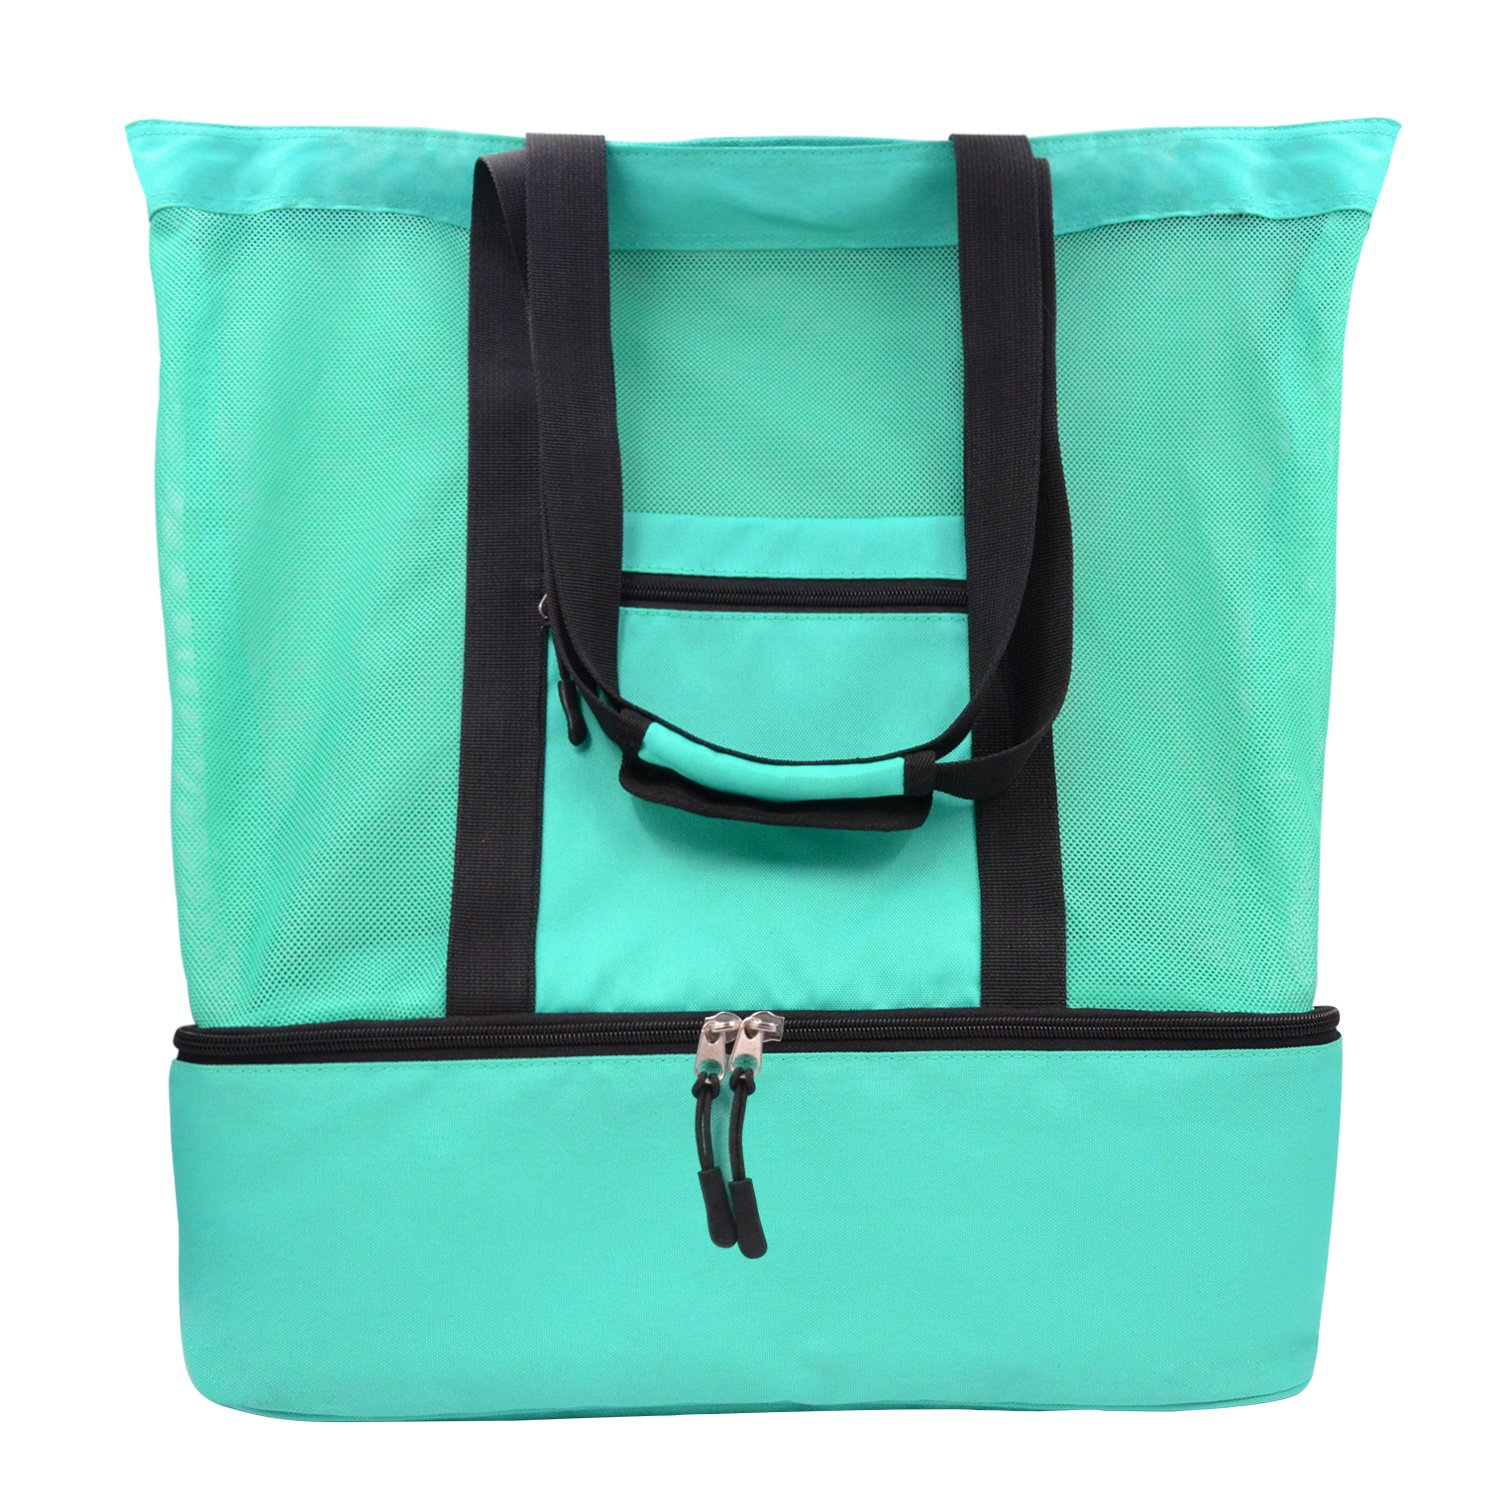 Mesh Beach Tote Bag, LEFON 2 in 1 Outdoor Travel Bag with Zipper Top and Insulated Picnic Cooler, Green 40L